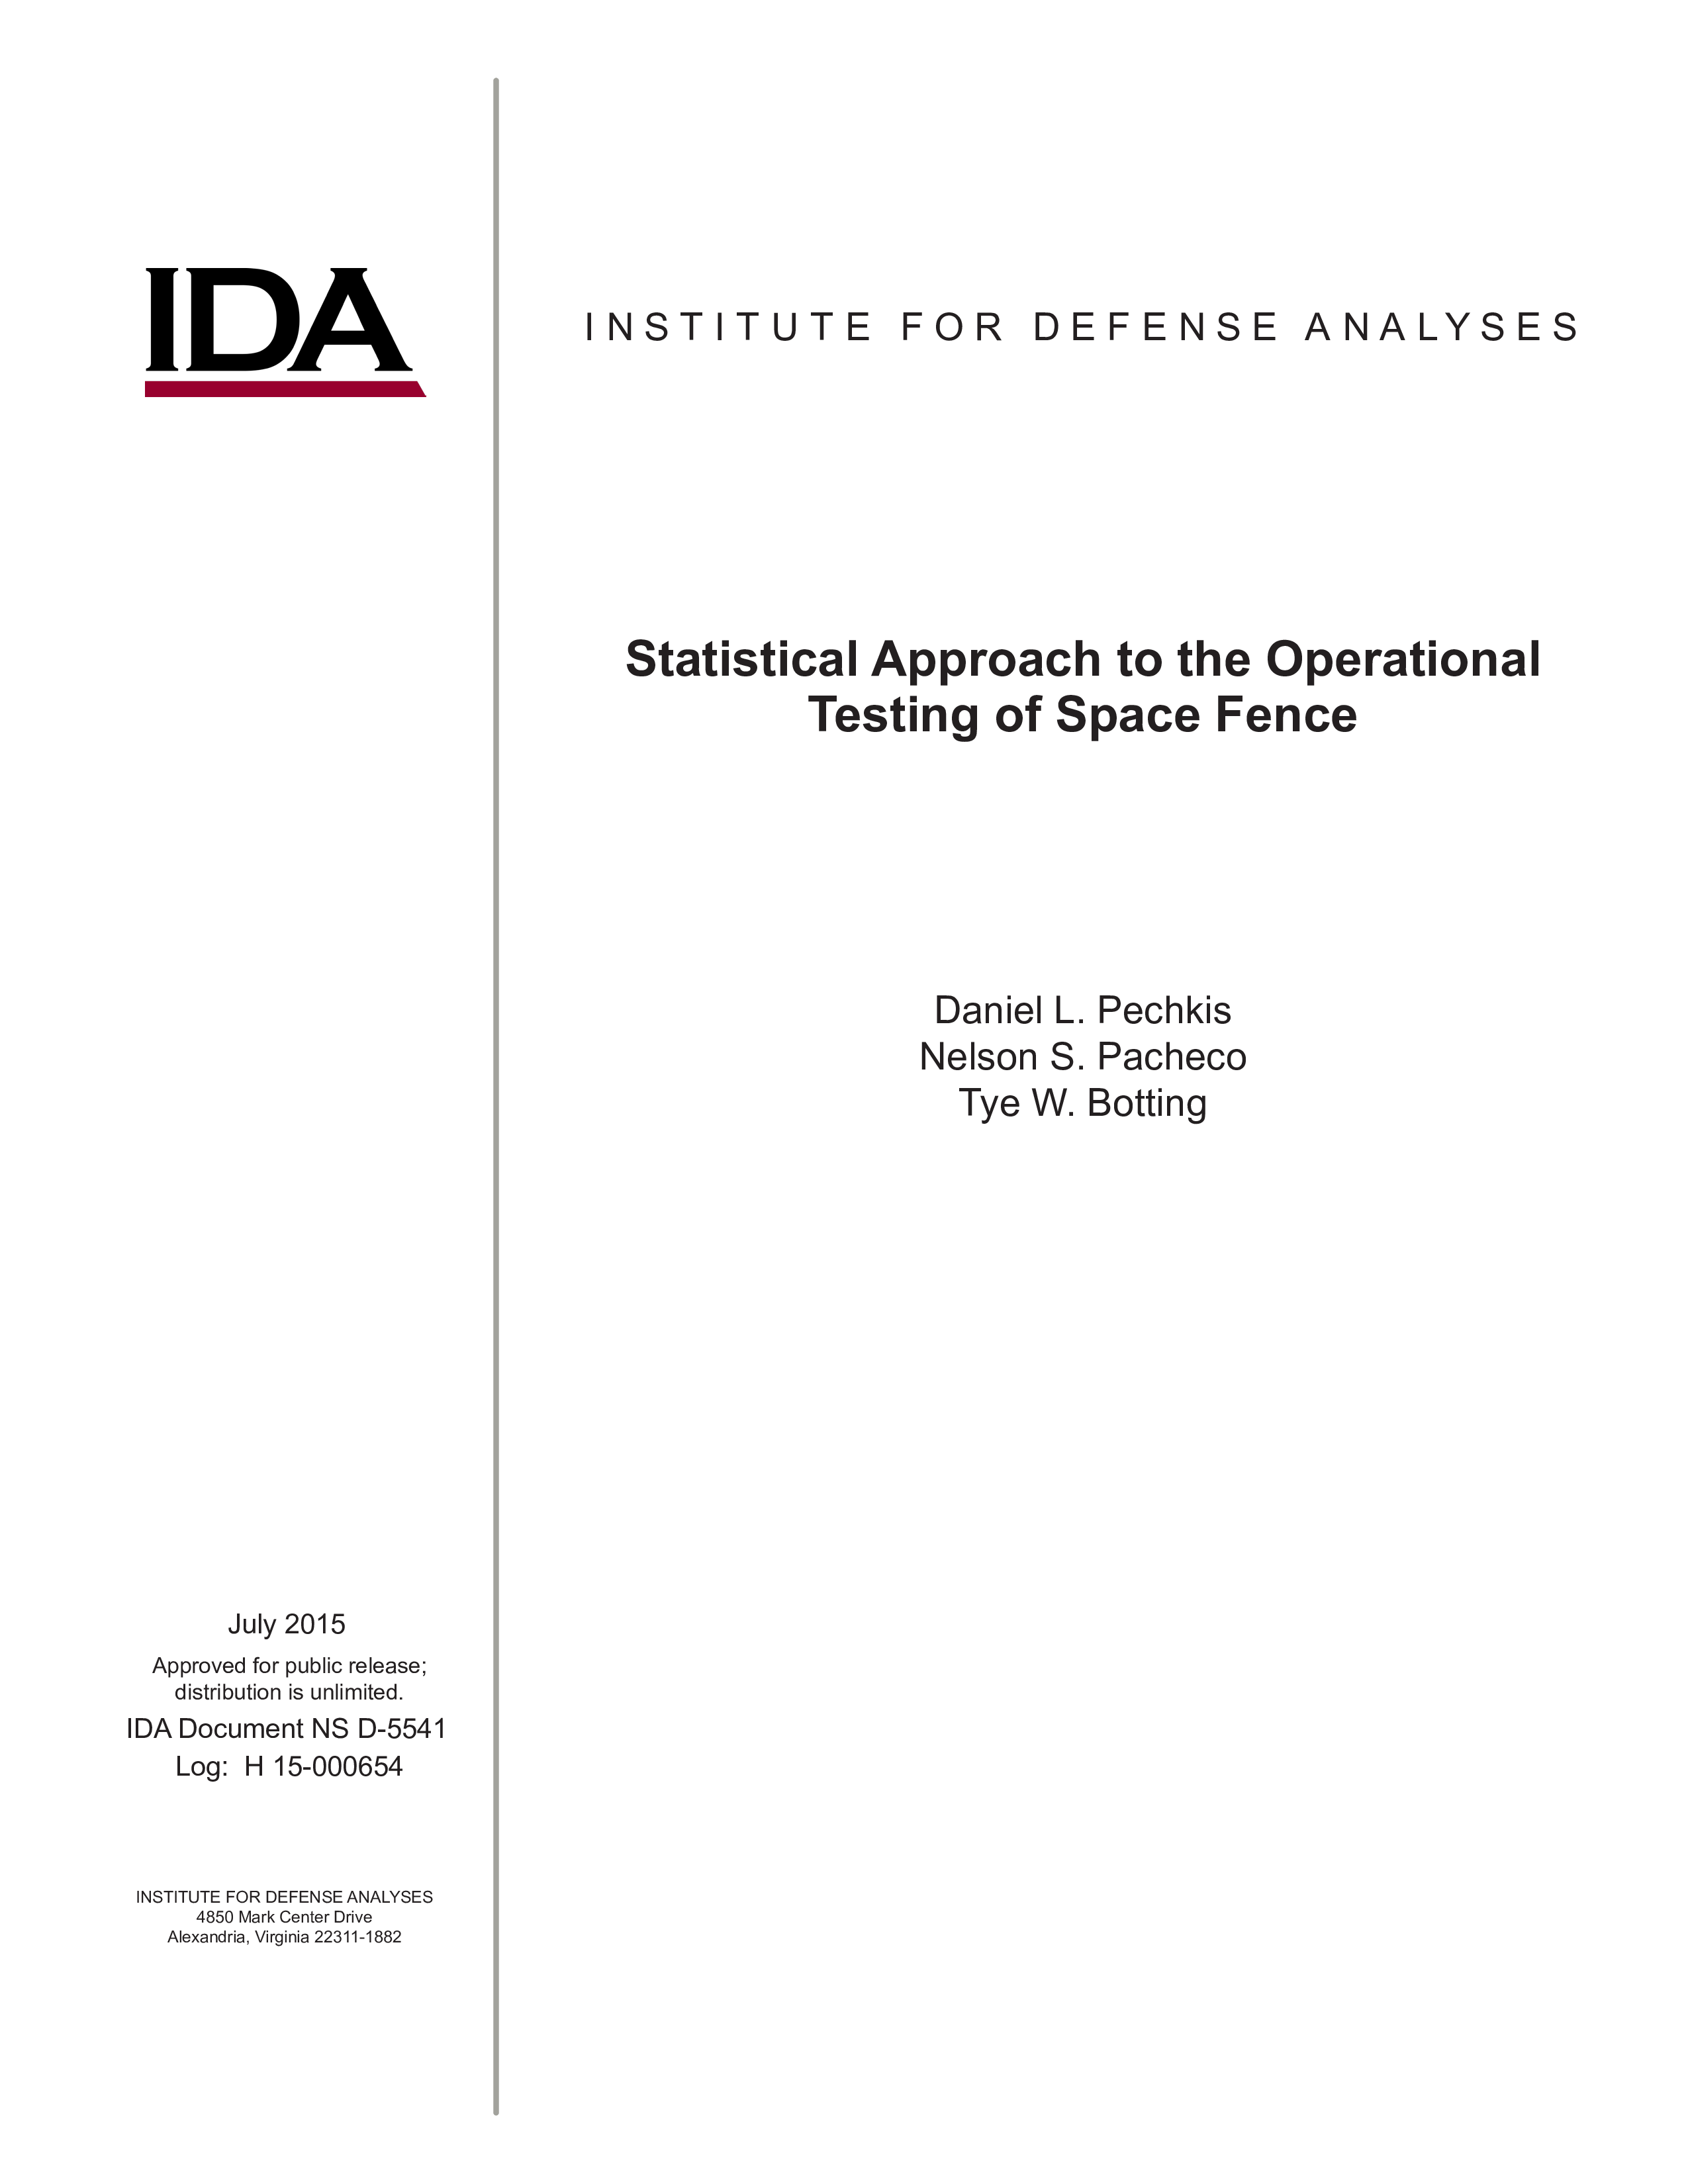 Statistical Approach to the Operational Testing of Space Fence cover image